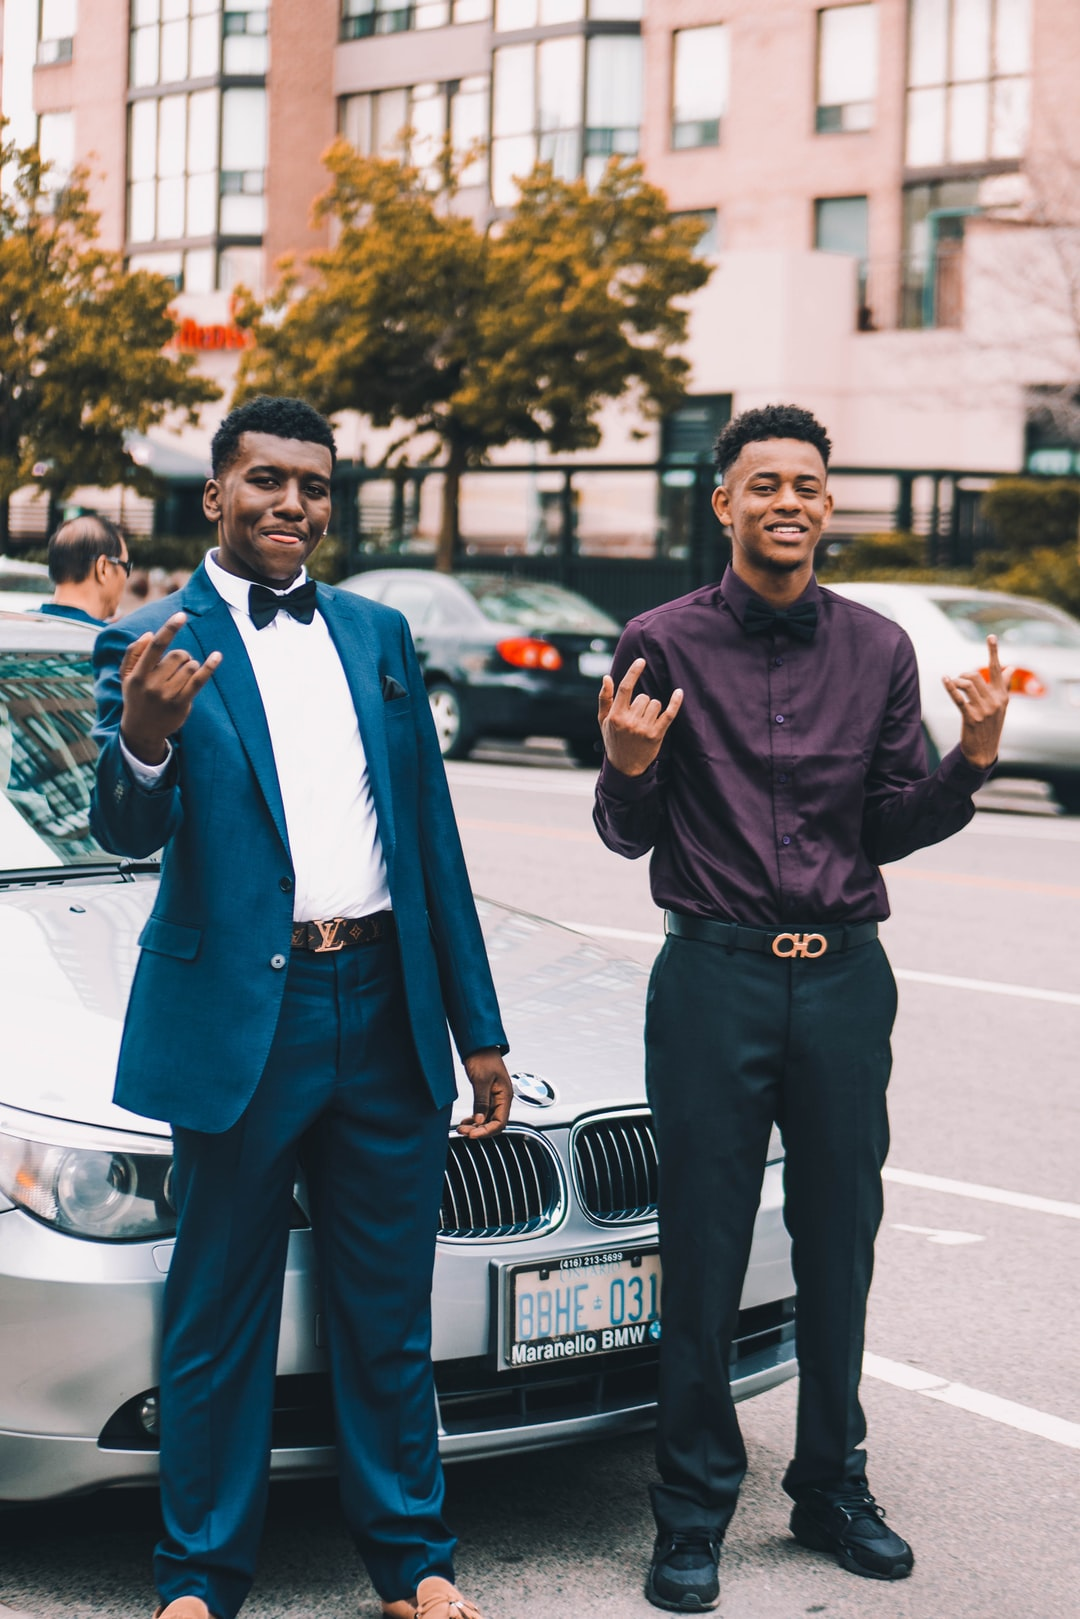 Two men with BMW